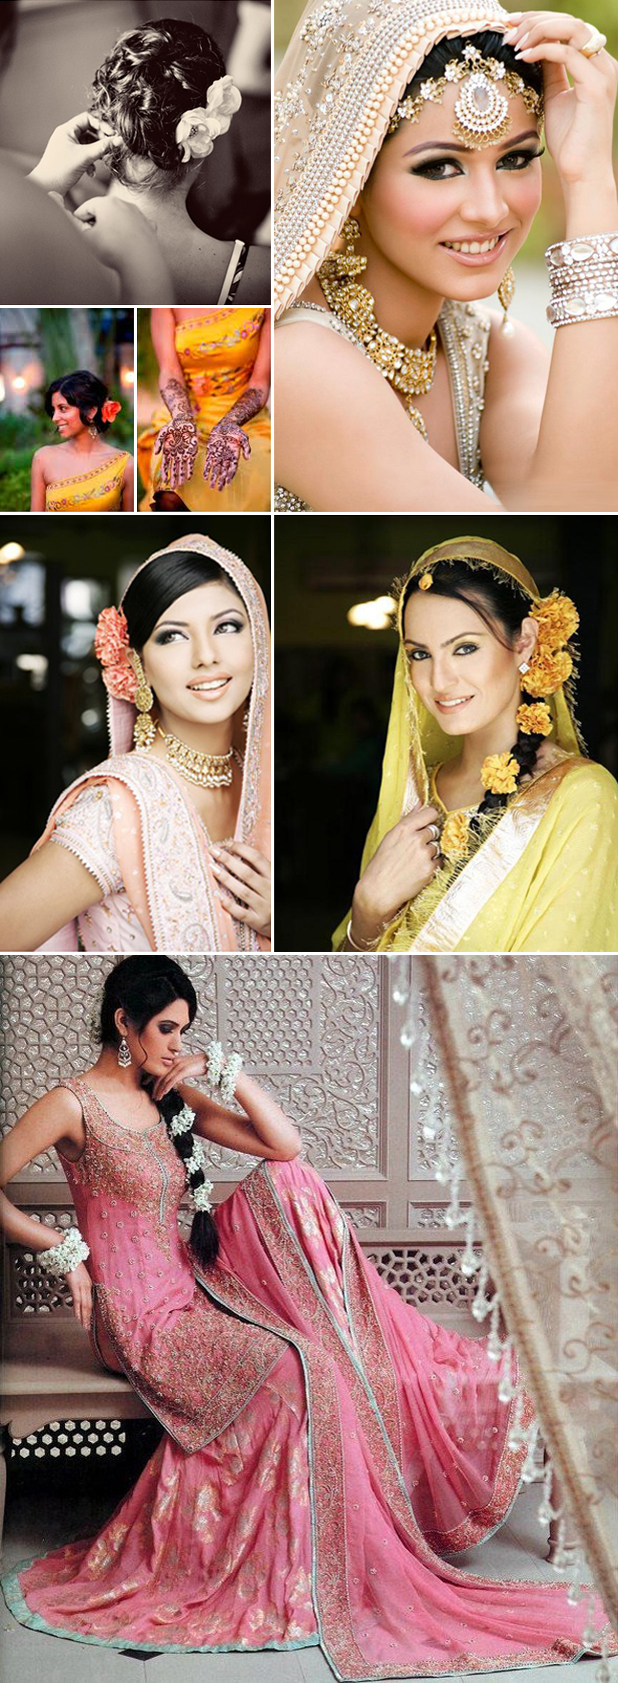 Indian Bride Spring Looks